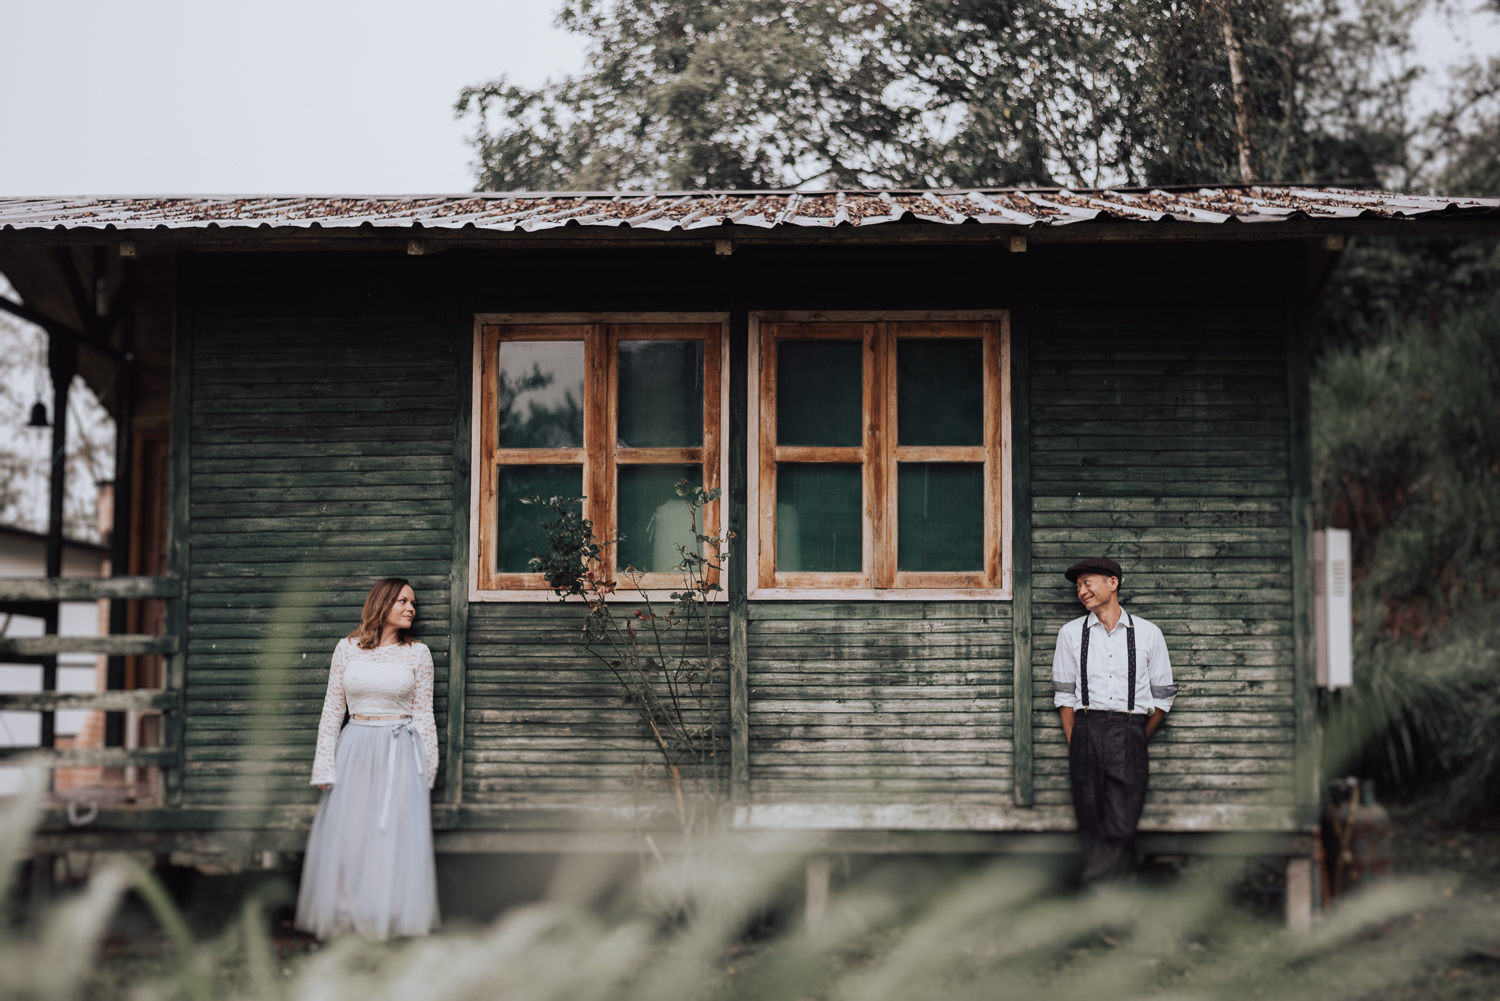 The guys were also wearing more casual looks, a lace crop top and a grey skirt for the bride and suspenders with pants for the groom